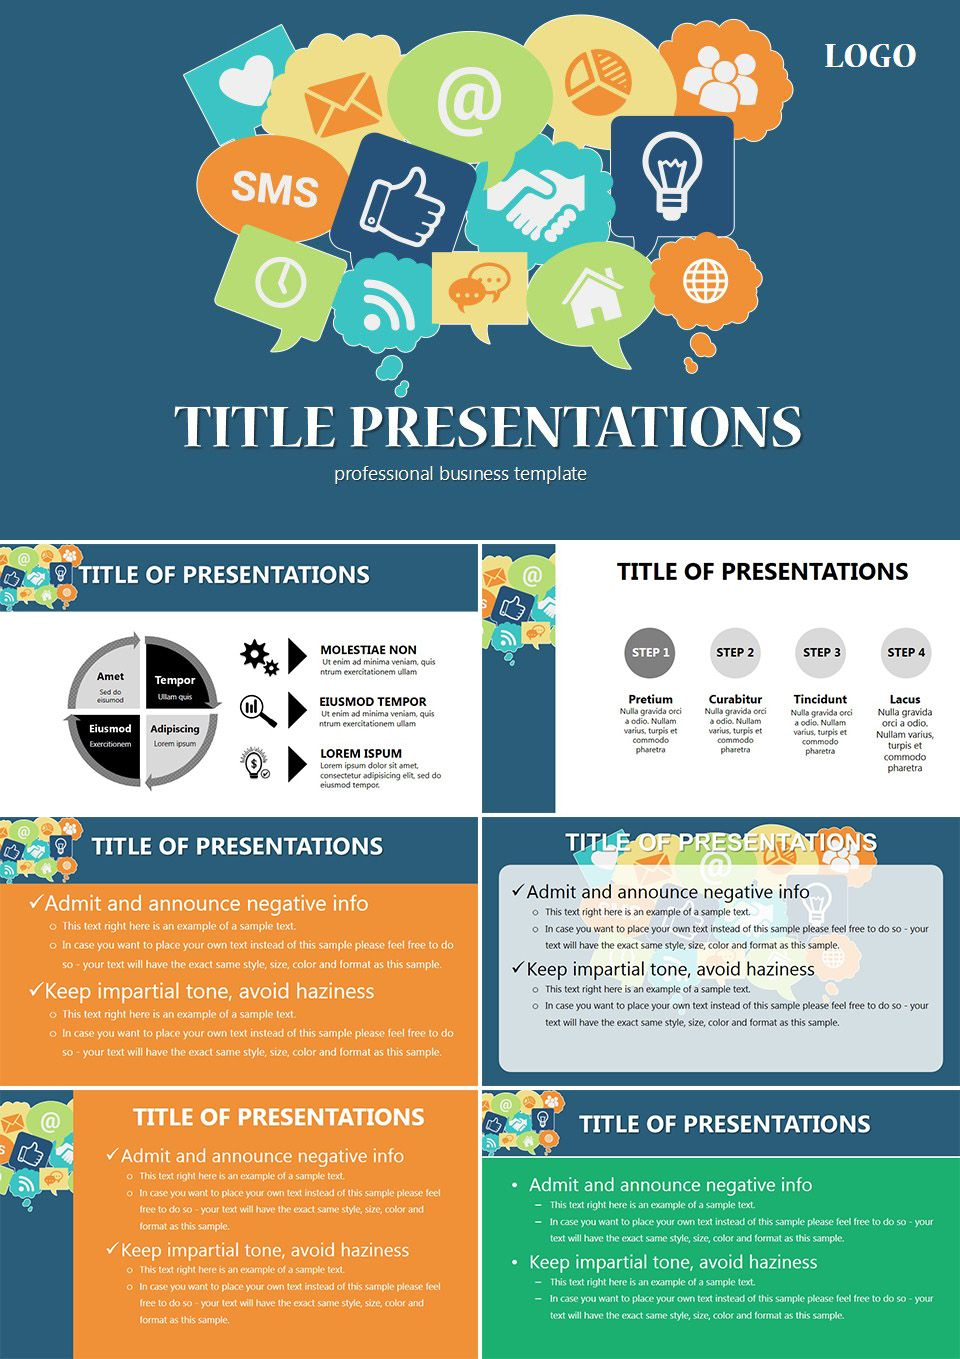 Social science research internet powerpoint templates powerpoint social science research internet powerpoint templates toneelgroepblik